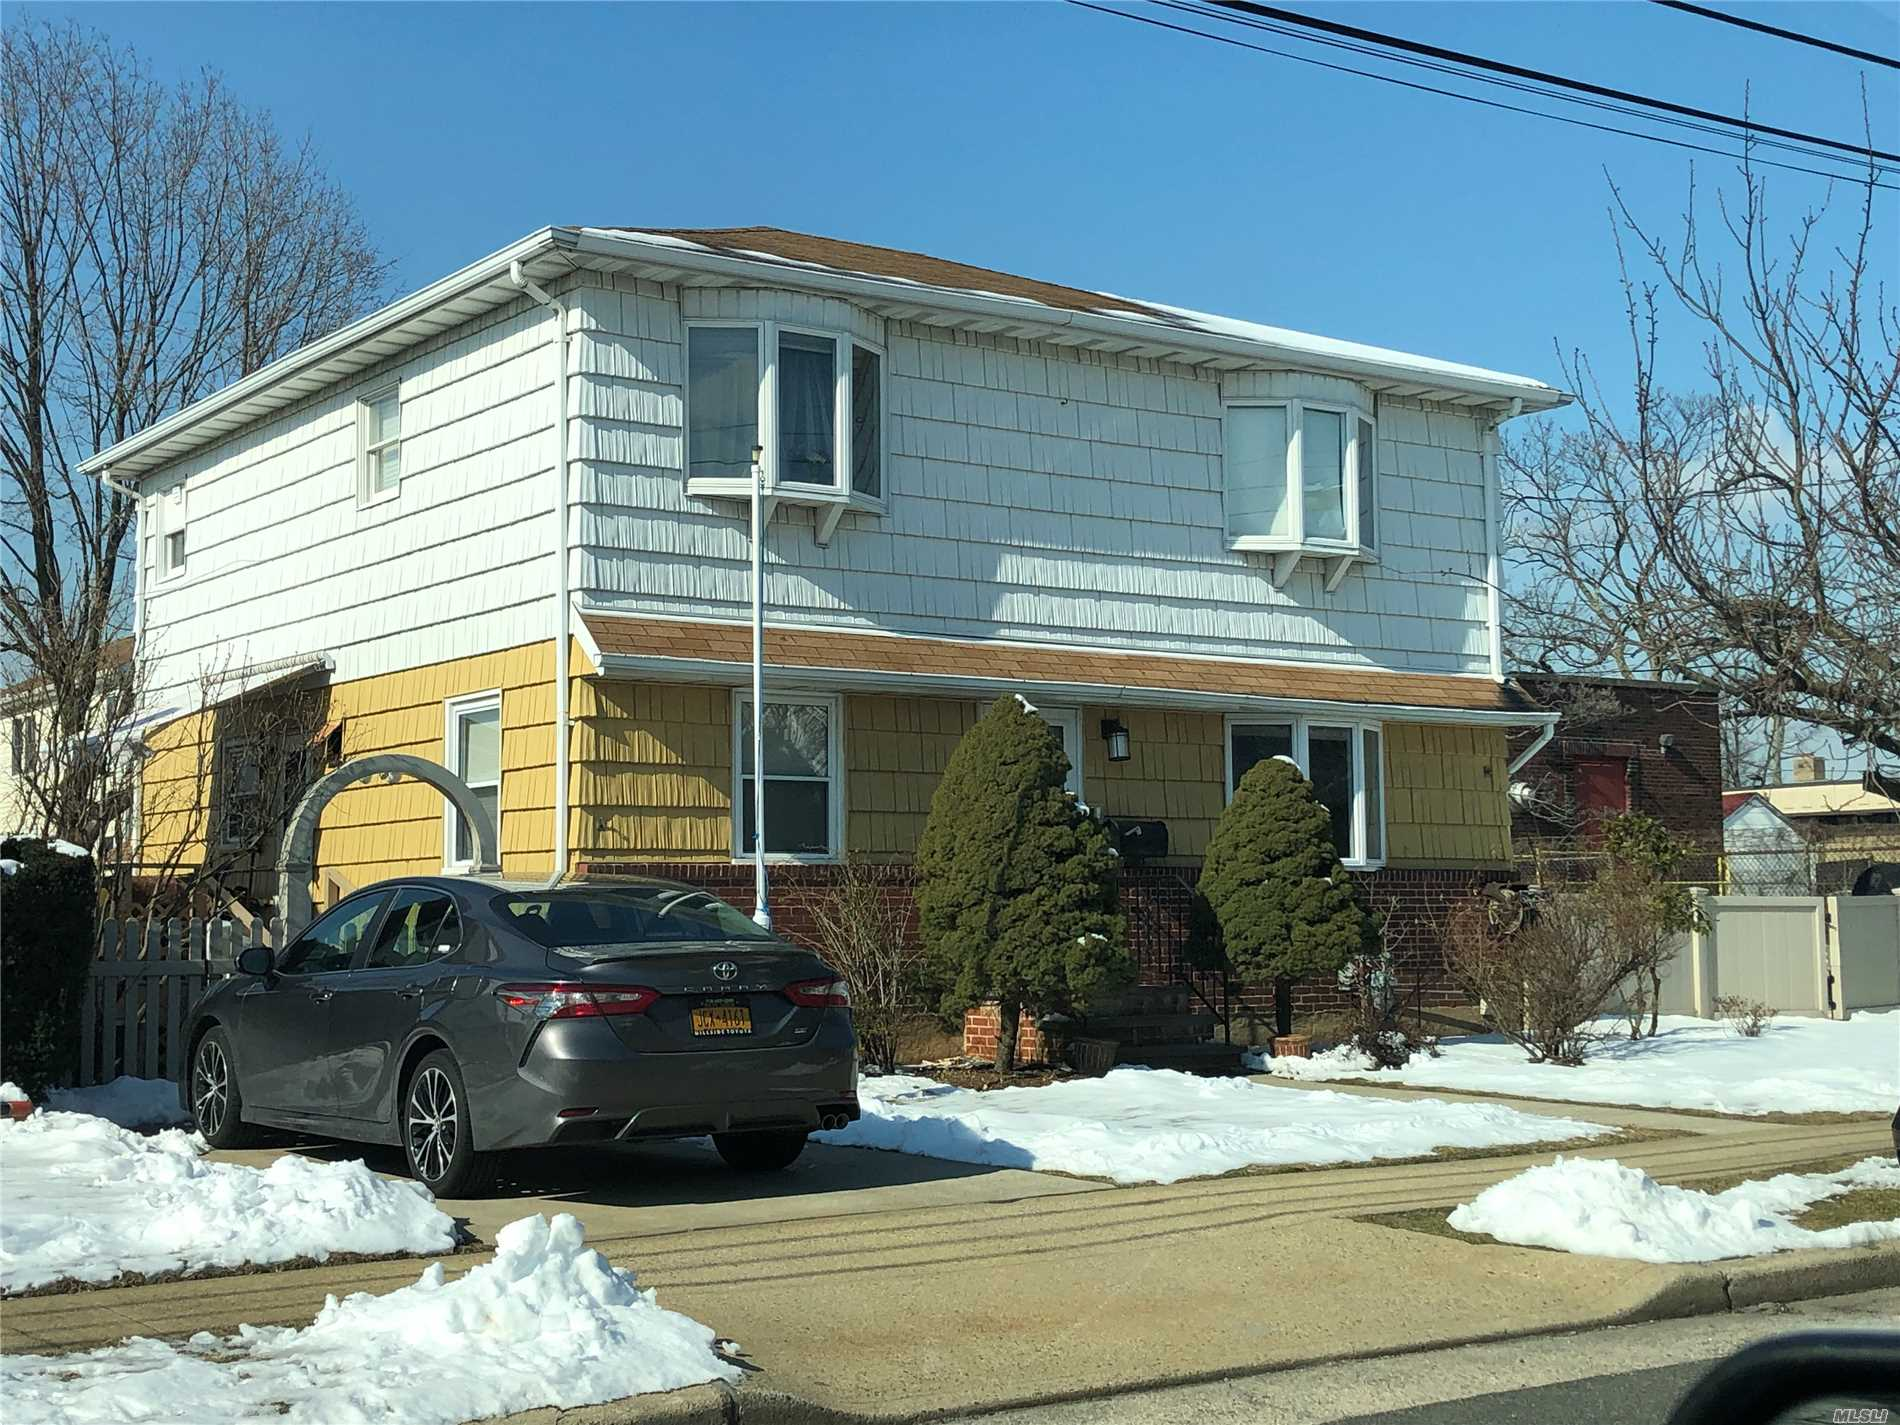 1 Family house built on 7000 Sqft , 2brm over 2 brm with finish basement. Mother Daughter..Show And Sell